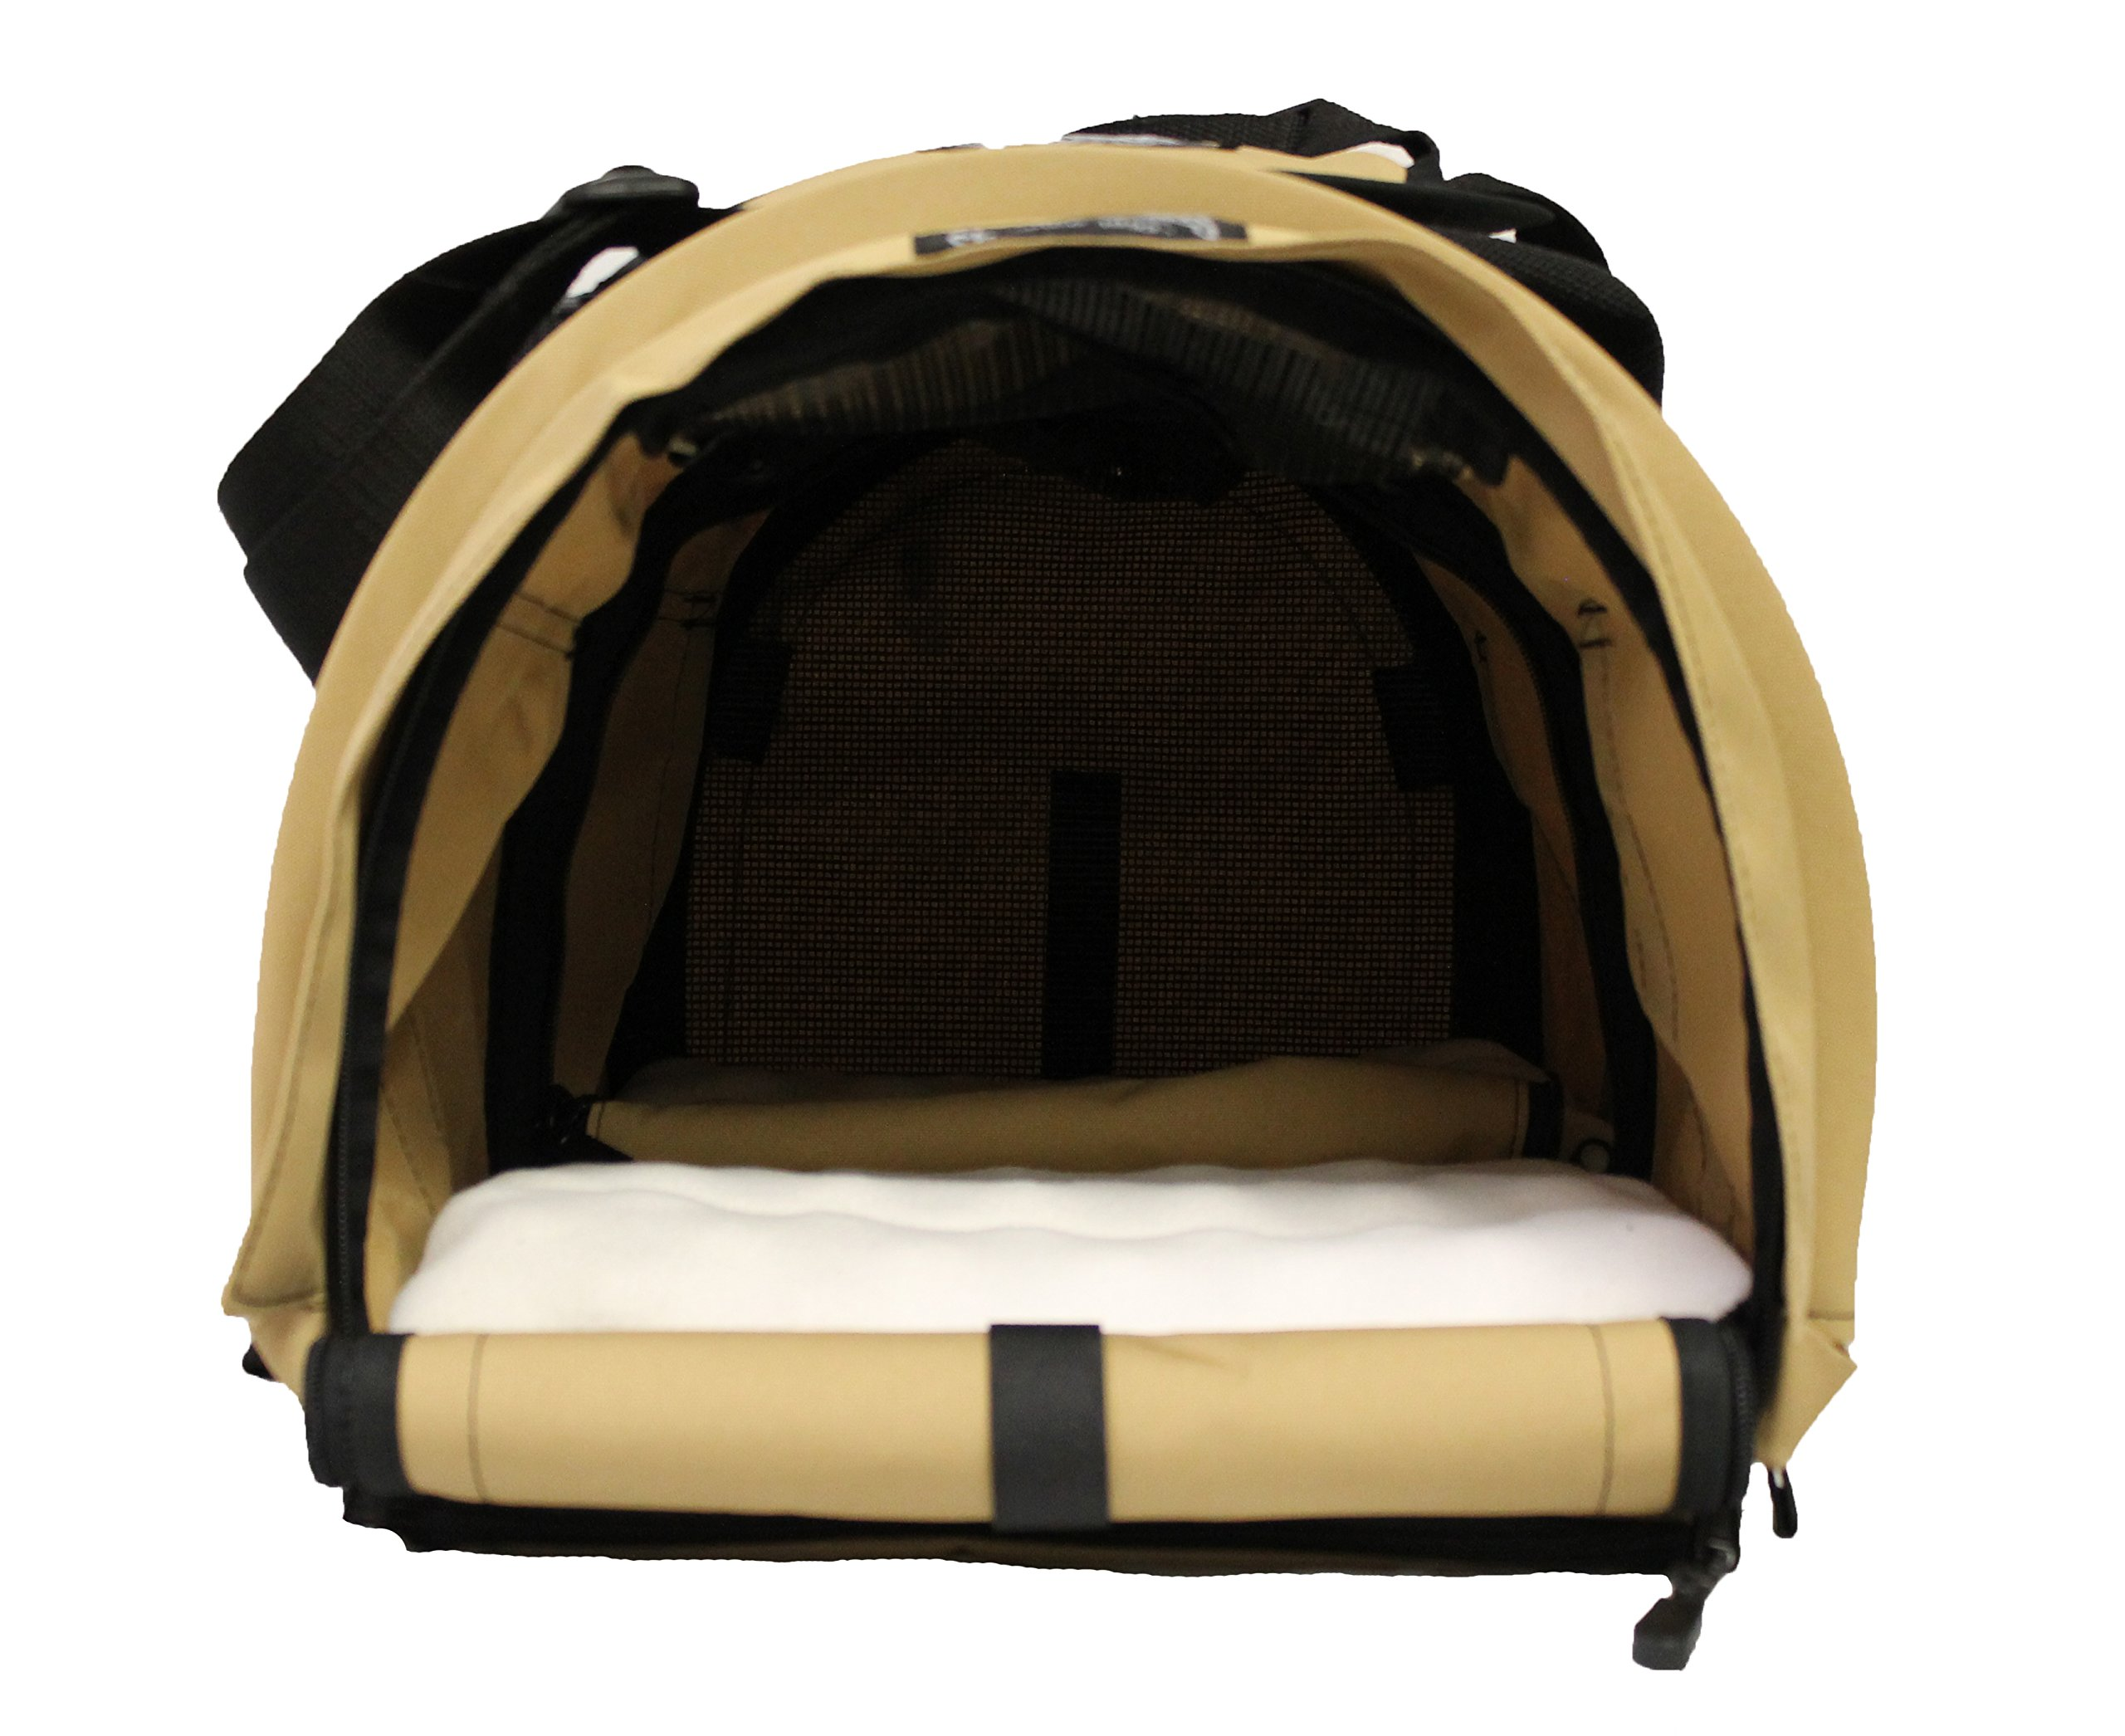 Sturdi Products StrudiBag Double Sided Divided Pet Carrier, Large, Earthy Tan by STURDI PRODUCTS